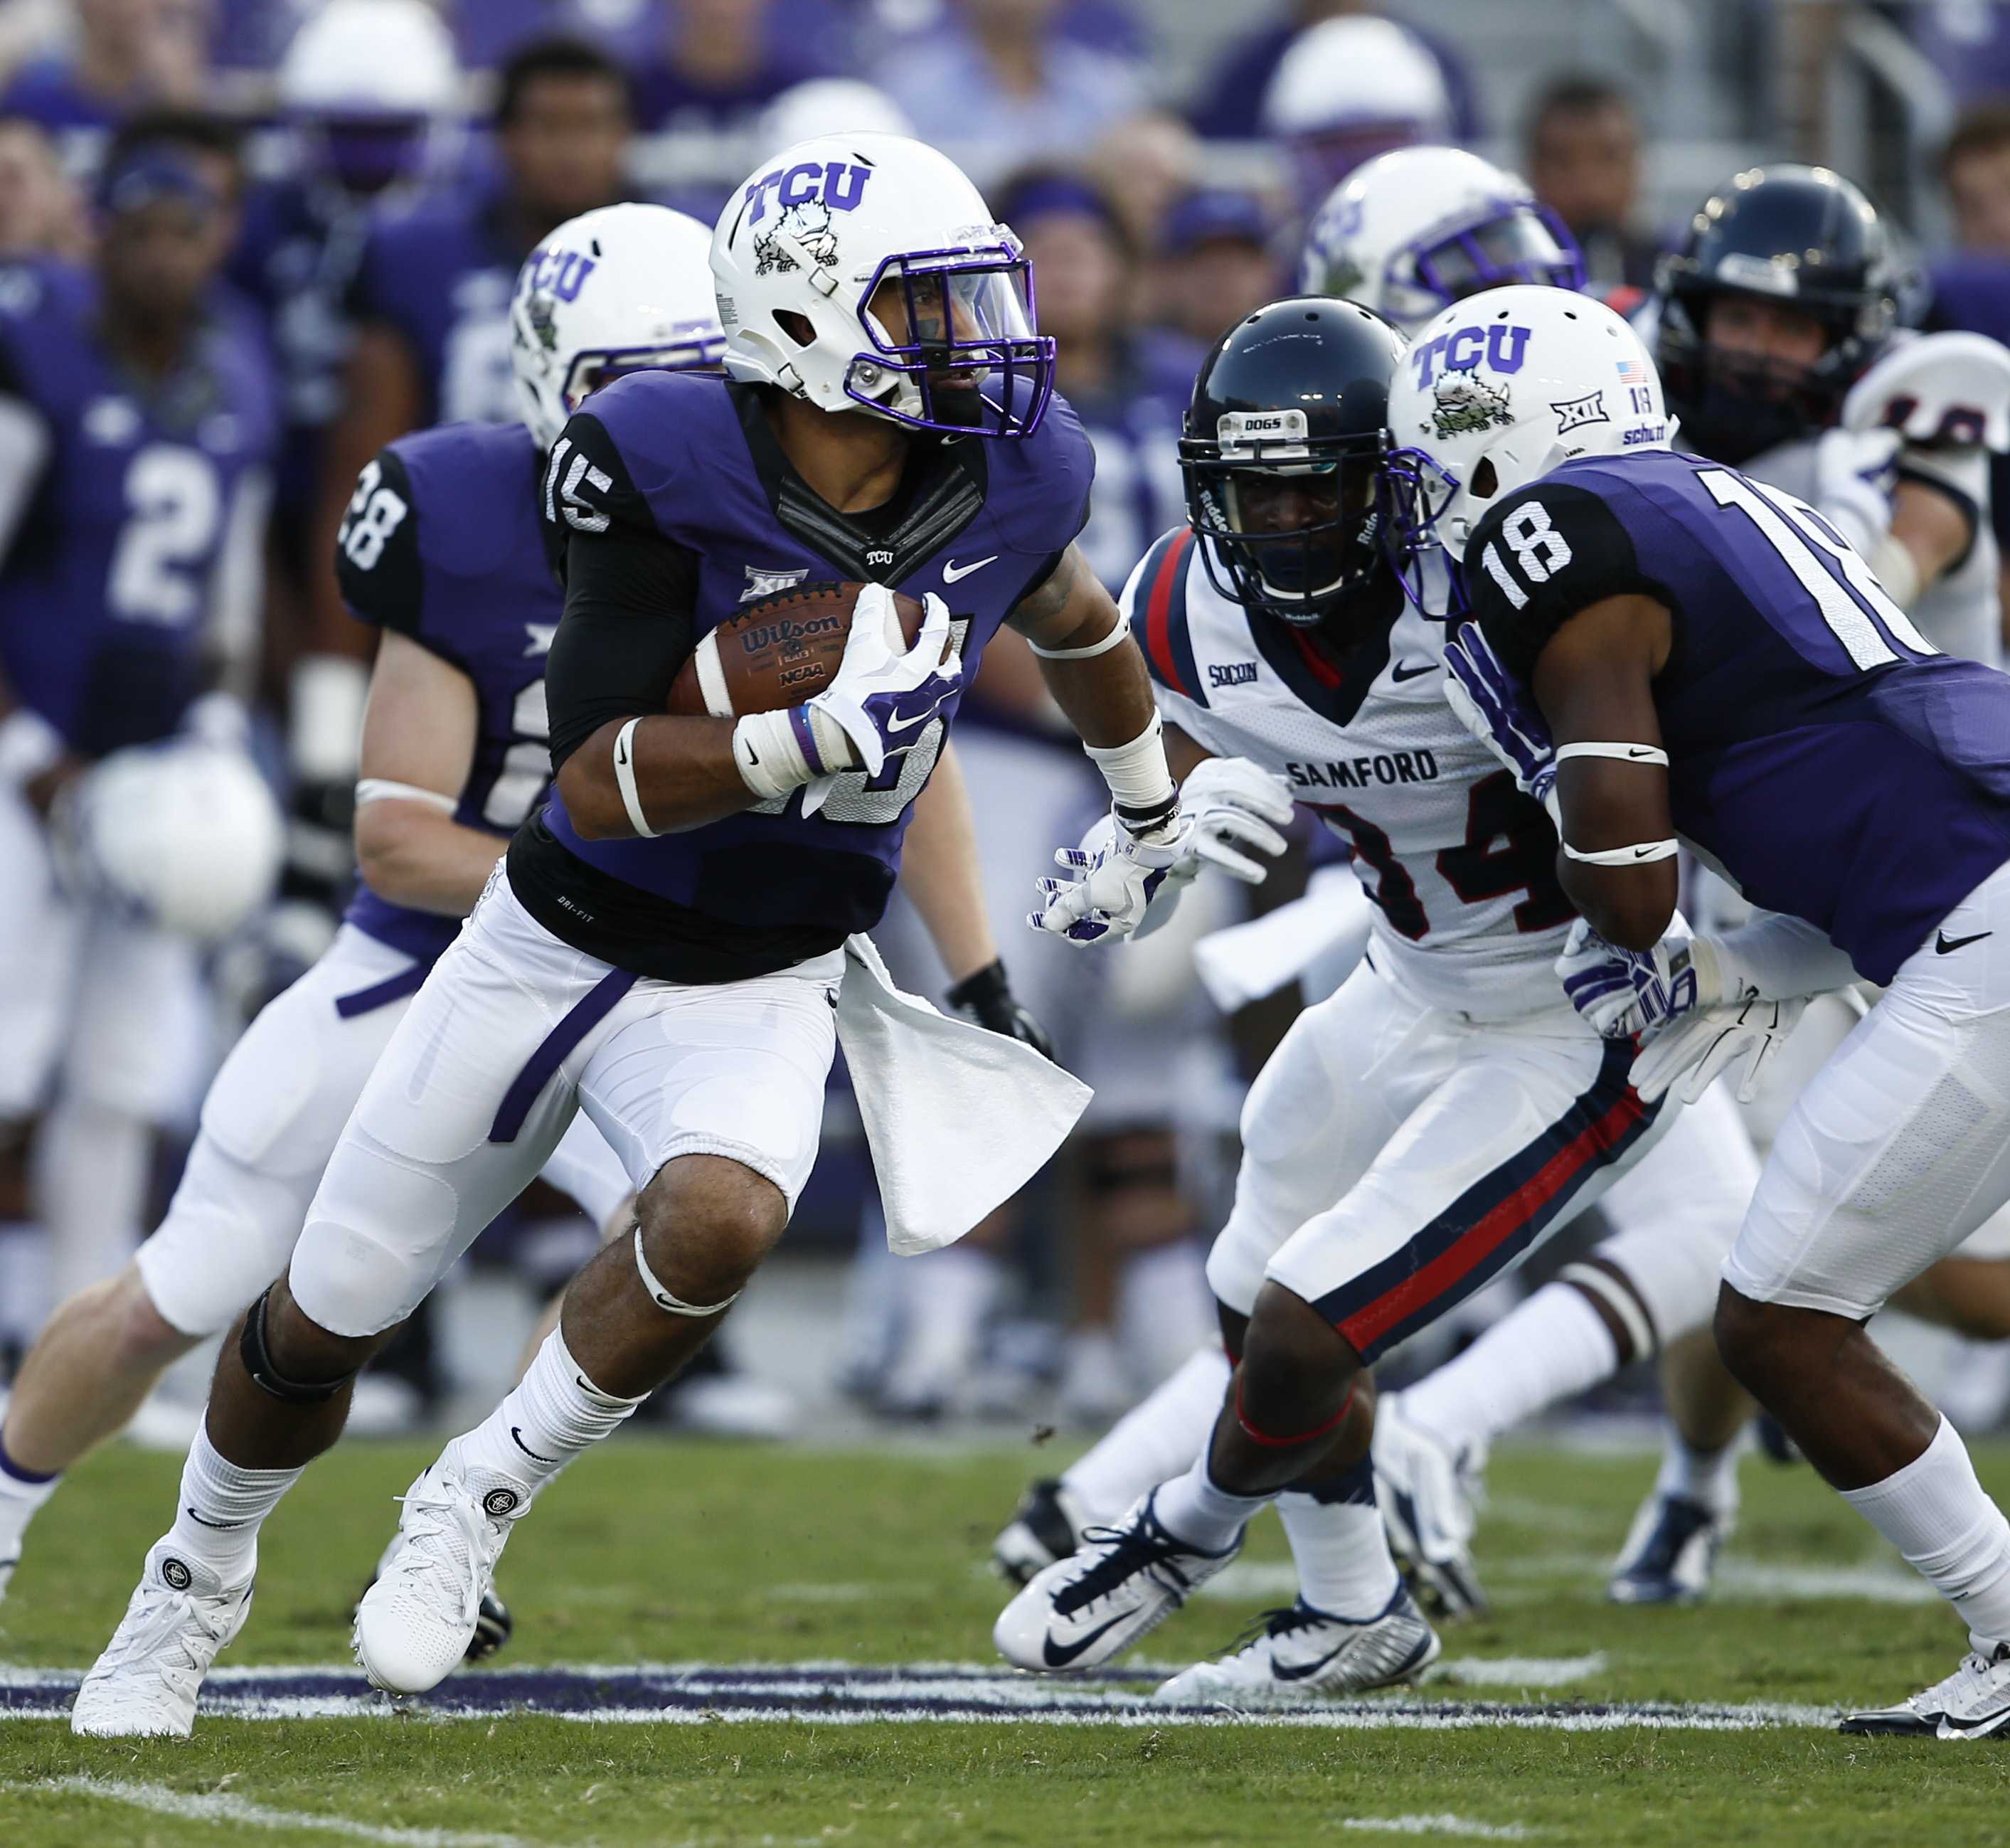 TCU wide receiver Cameron Echols-Luper (15) runs past \s9in the first half of an NCAA college football game in Fort Worth, Texas, Saturday, Aug. 30, 2014. (AP Photo/Jim Cowsert)